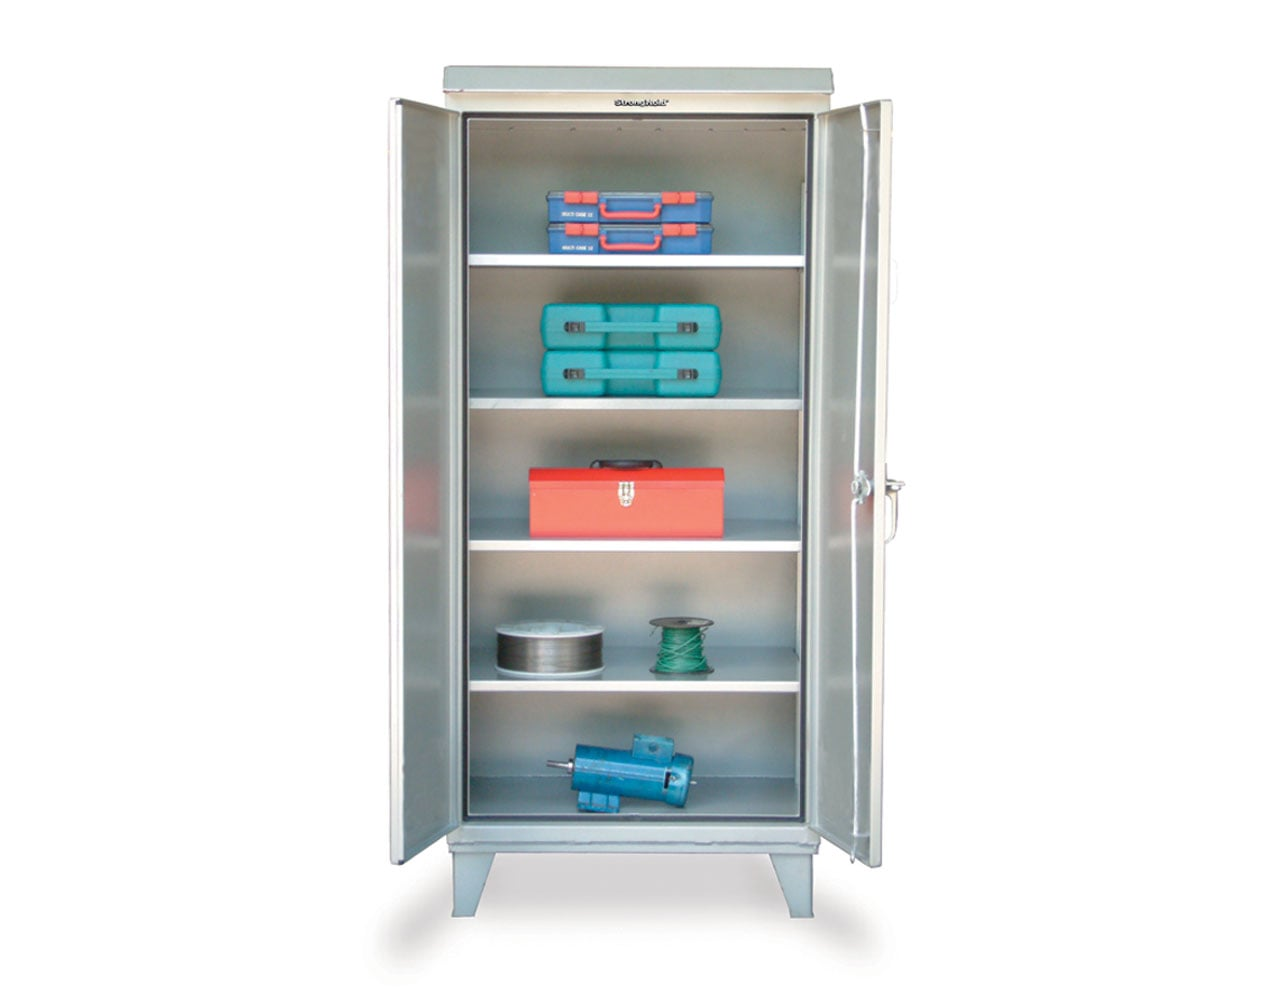 Extra Heavy Duty 12 GA Weather-Resistant Cabinet with 4 Shelves – 60 In. W x 24 In. D x 78 In. H